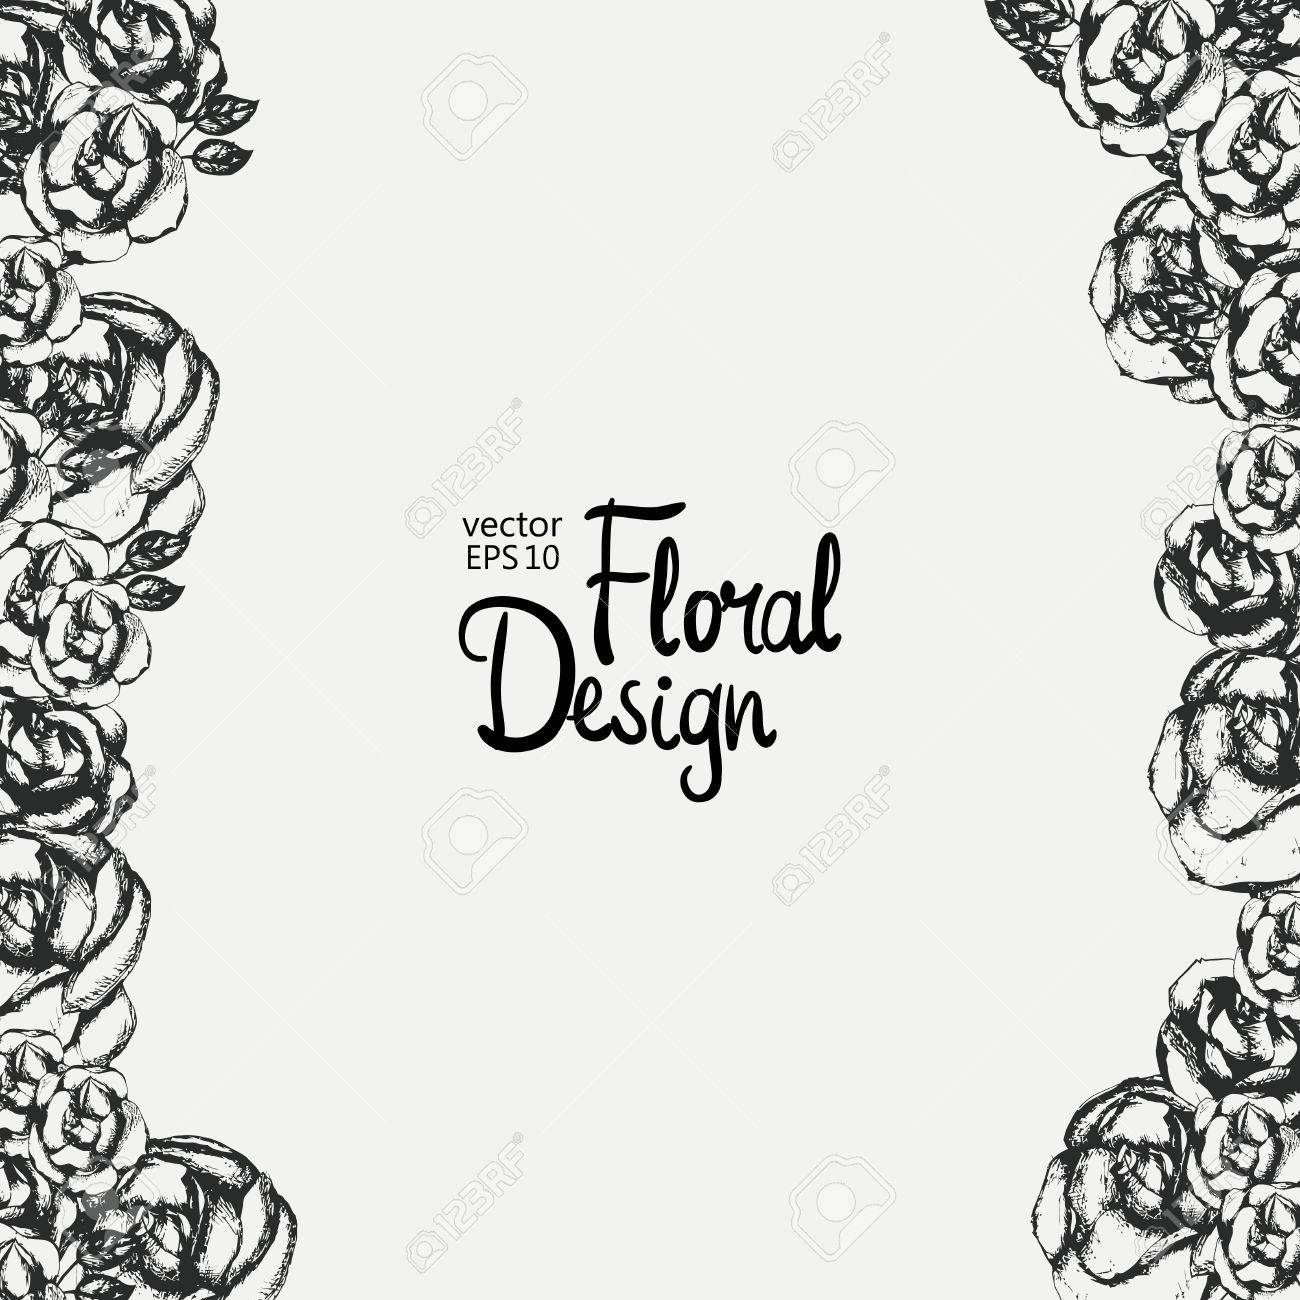 Vintage Floral Vector Frame Black And White Hand Drawn Flowers